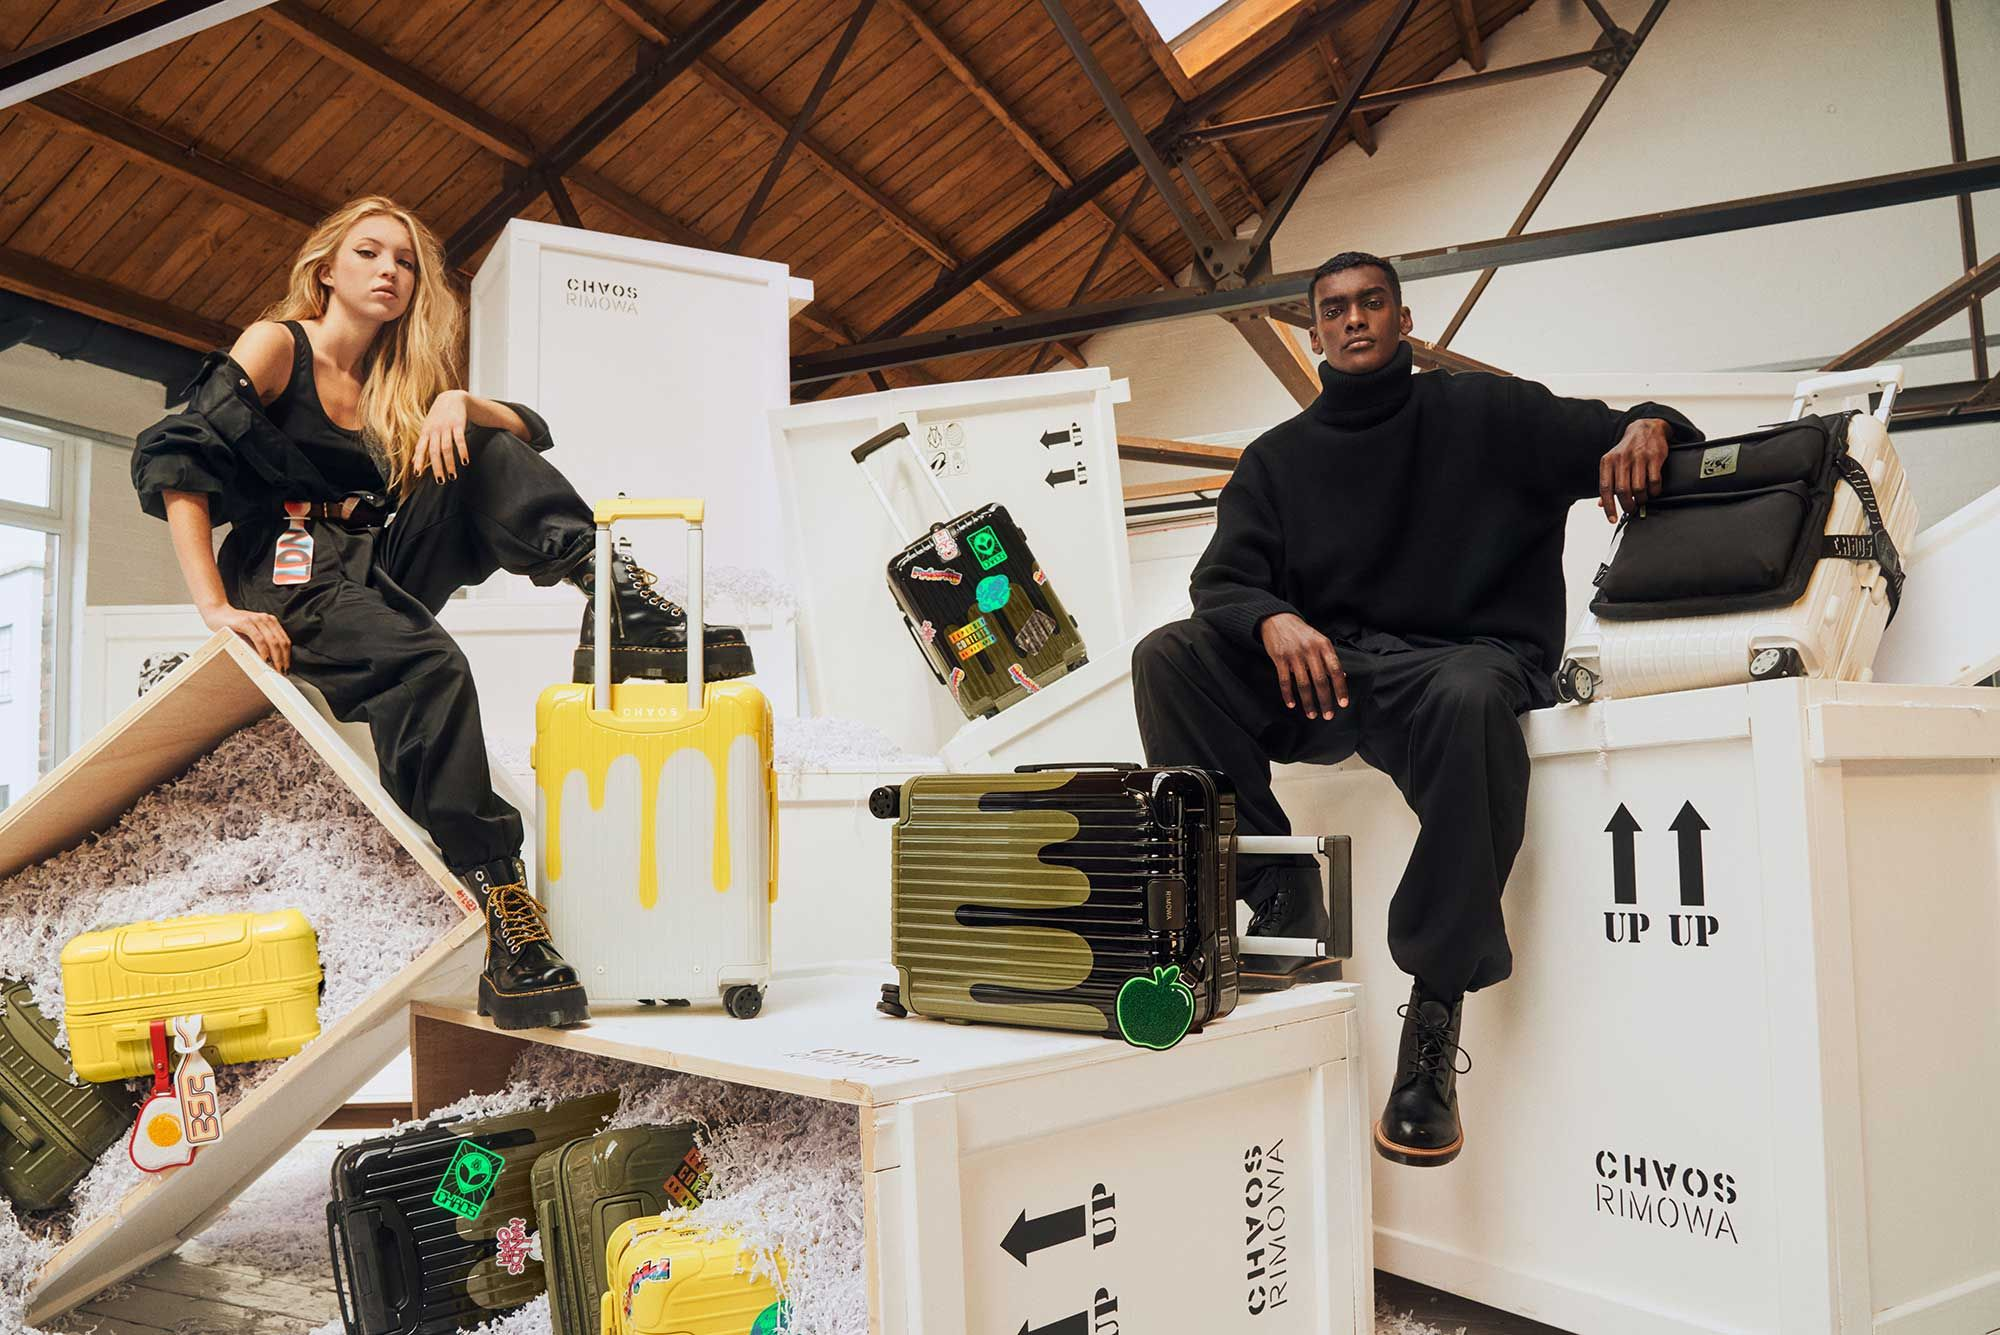 Rimowa x Chaos: The Most Stylish Luggage We'll All Be Using Once Travel Resumes